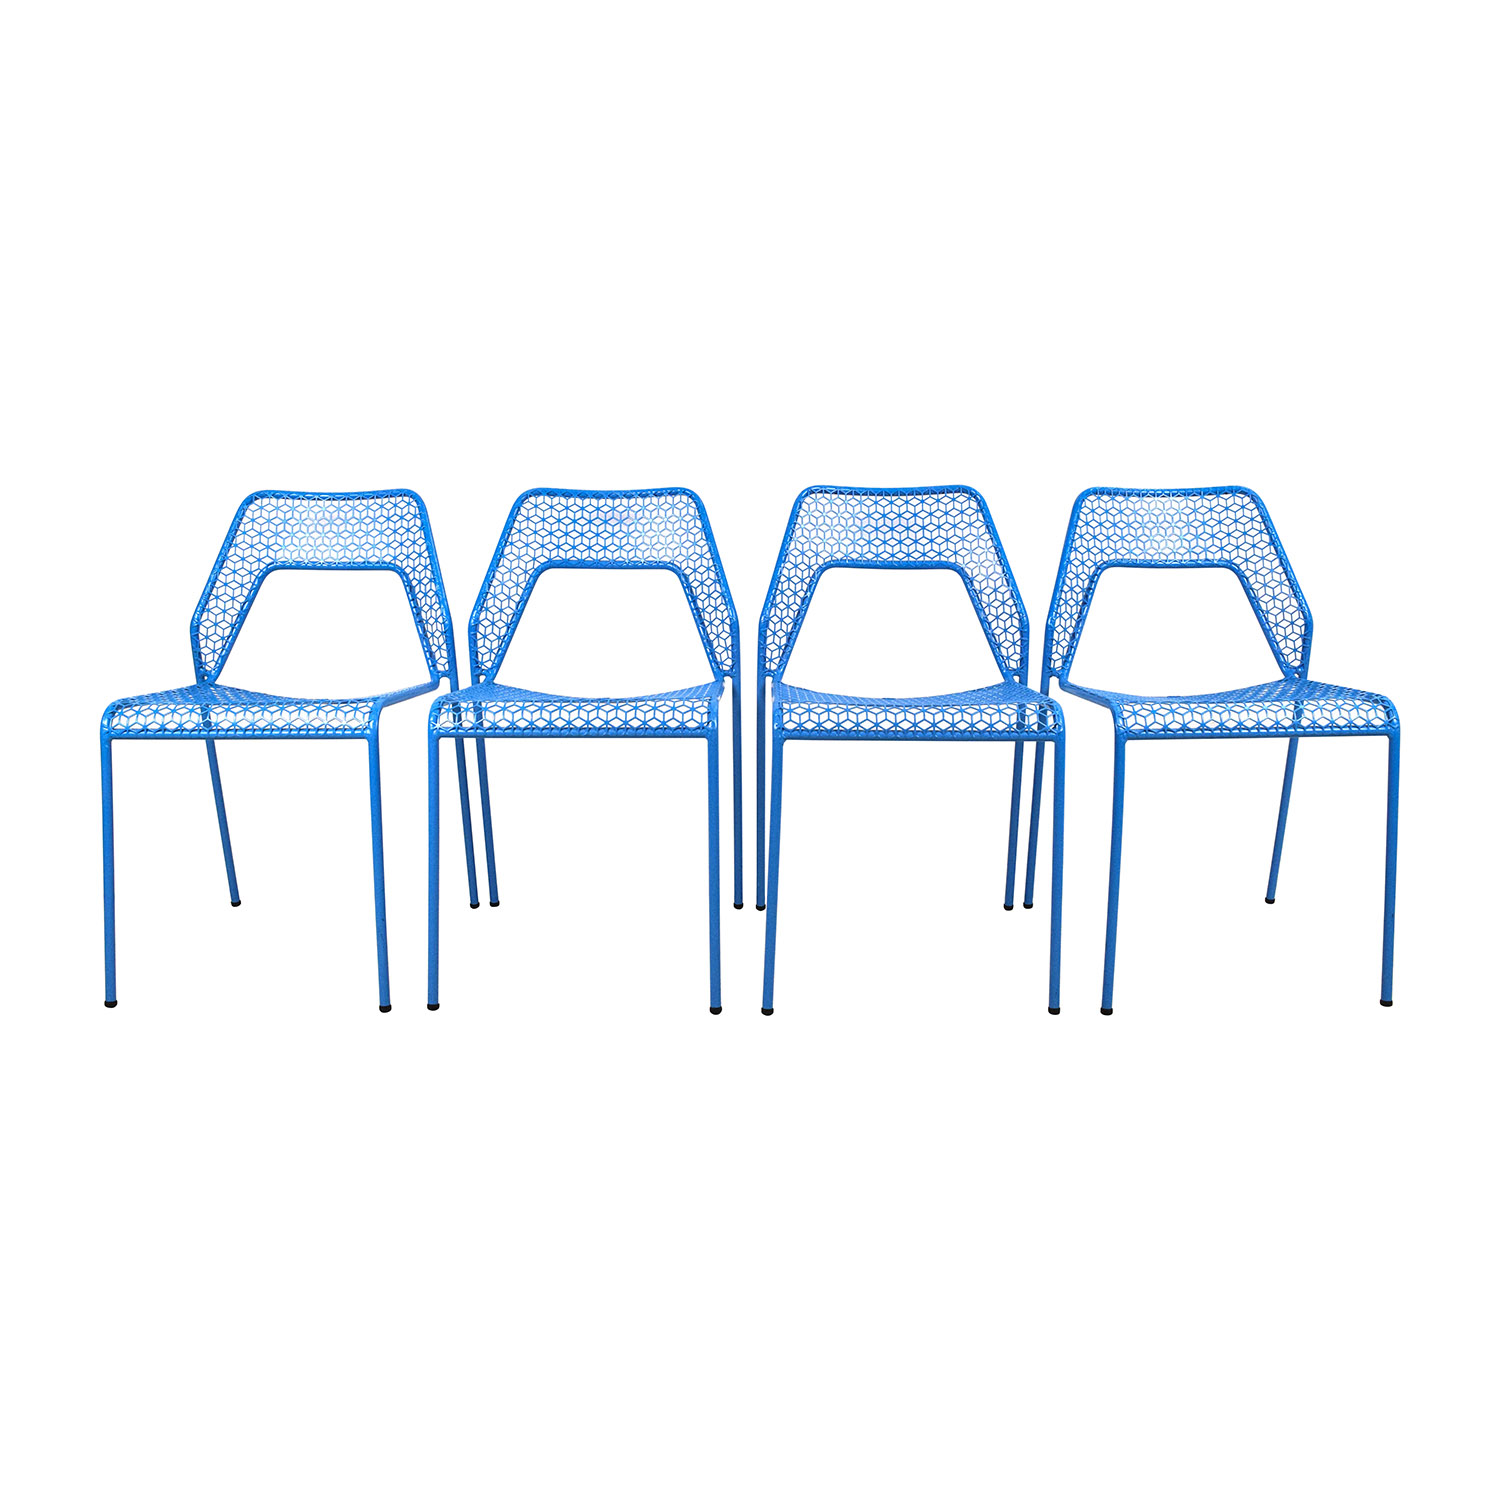 Shop Blu Dot Hot Mess Chipper Blue Steel Mesh Chairs Blu Dot Chairs ...